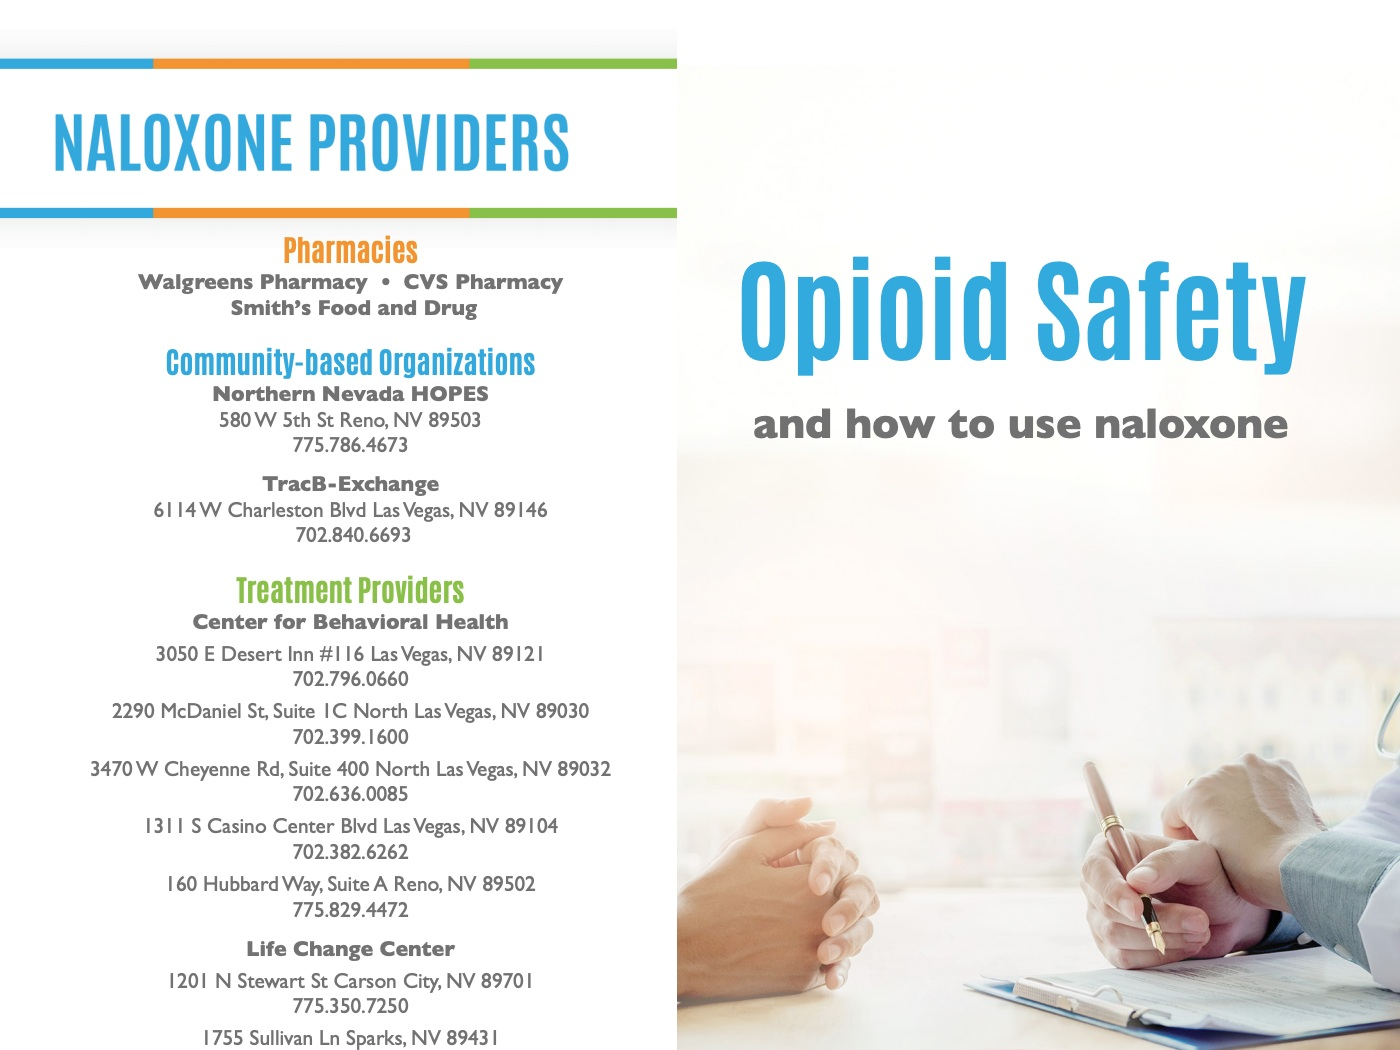 Naloxone resources - Information about where to obtain naloxone in Nevada and how to use it.